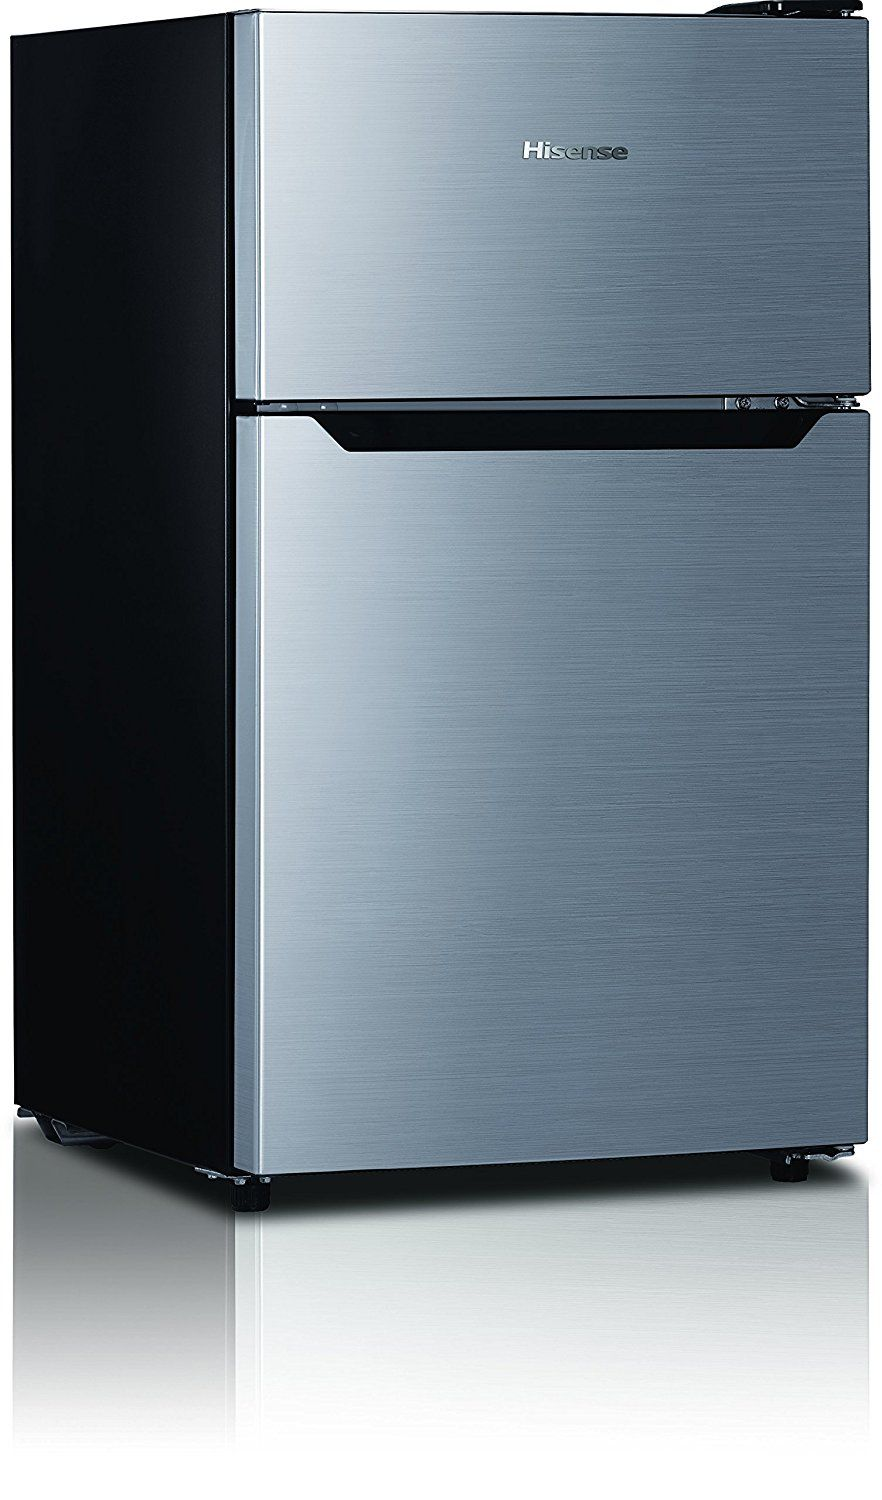 Hisense Rt33d6bae Compact Refrigerator With Double Door Top Mounted Freezer 3 3 Cu Ft Stainl Compact Refrigerator Refrigerator Compact Refrigerator Freezer